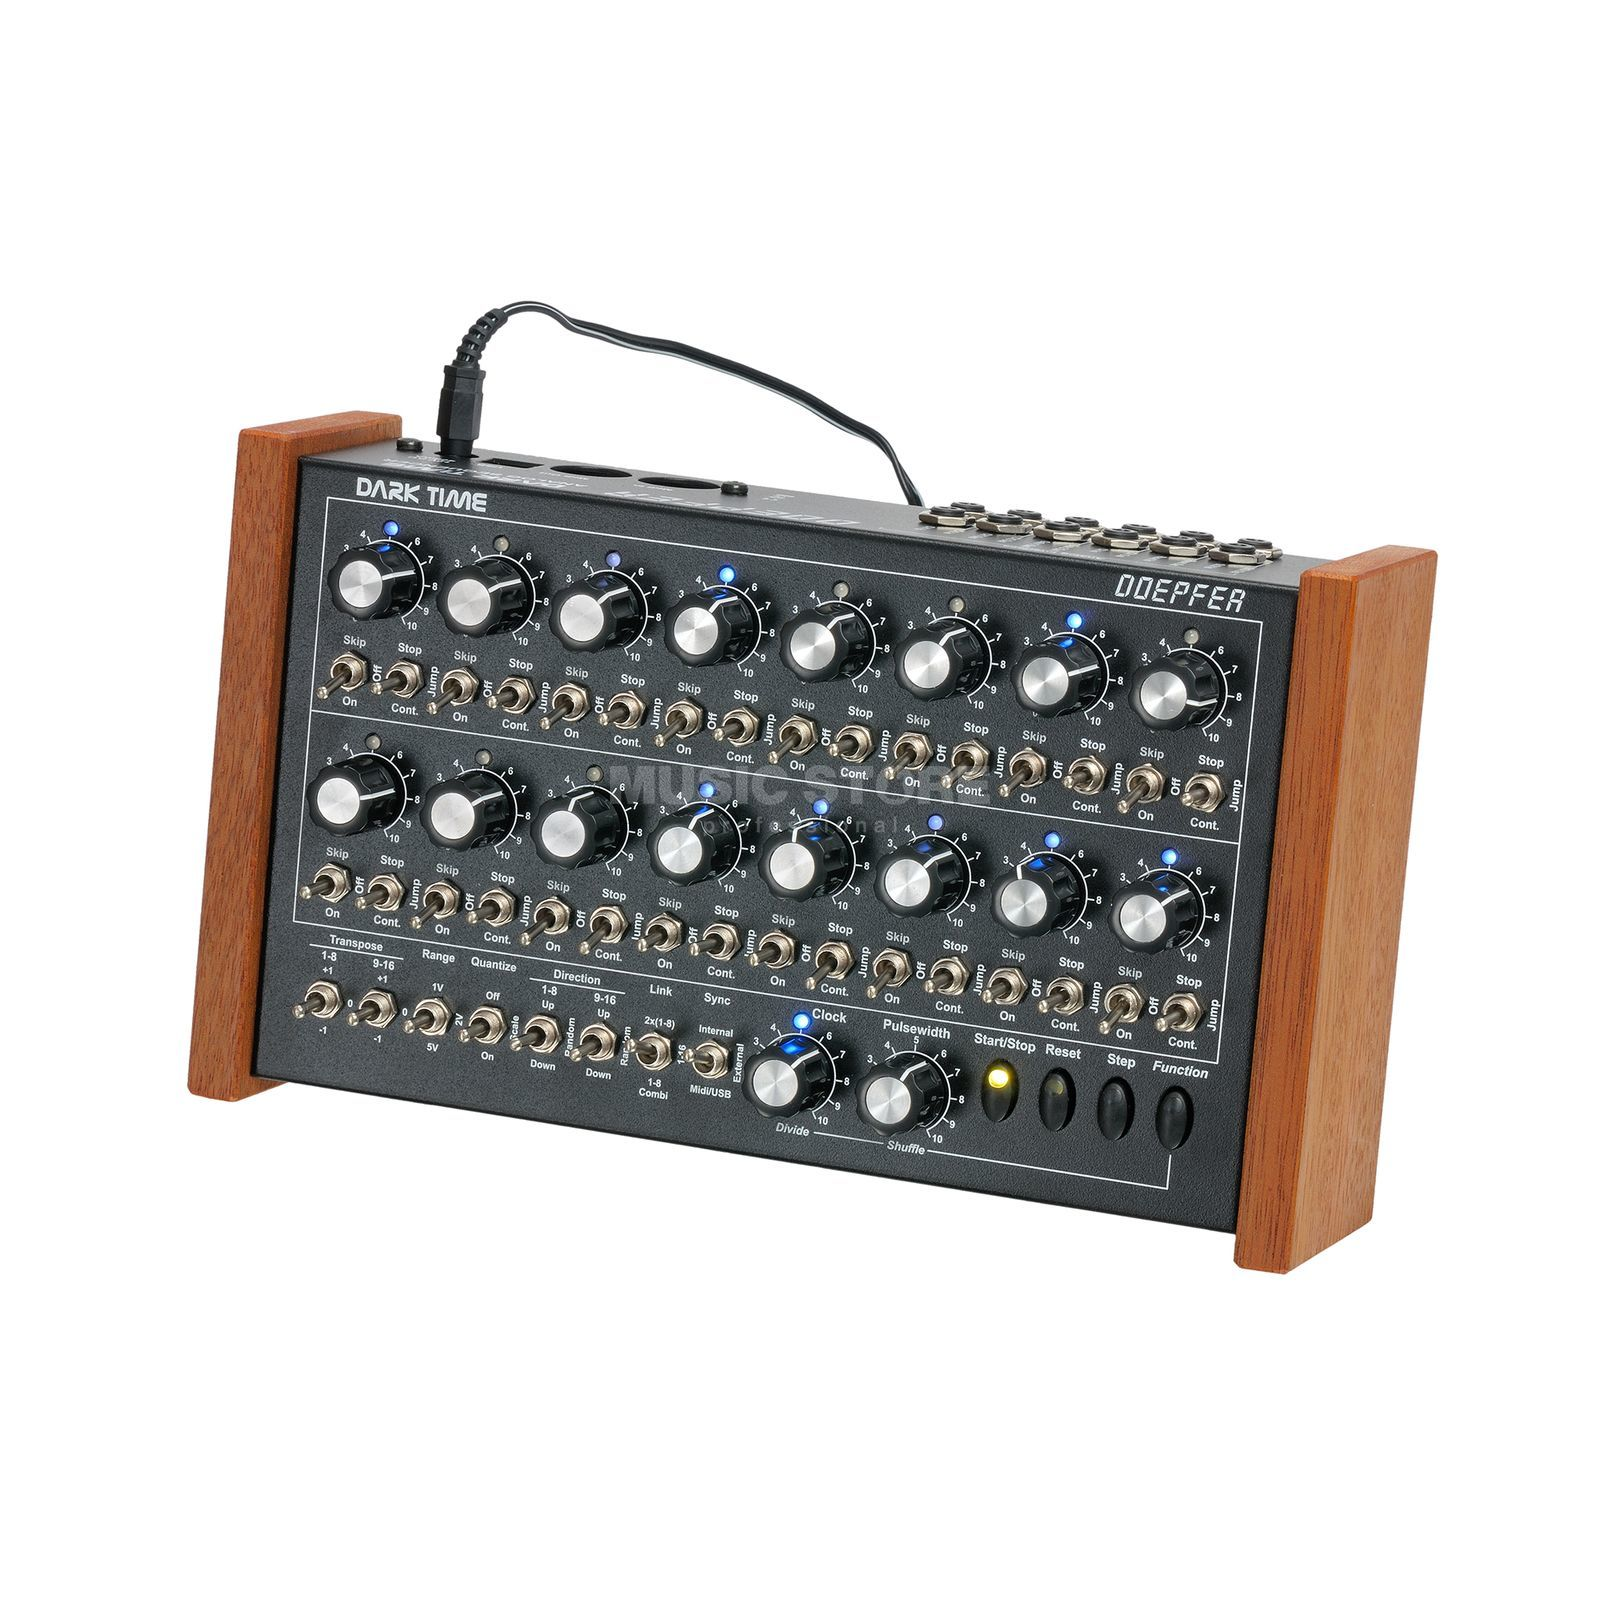 Doepfer Dark Time Analog Sequencer Blue LED's Product Image